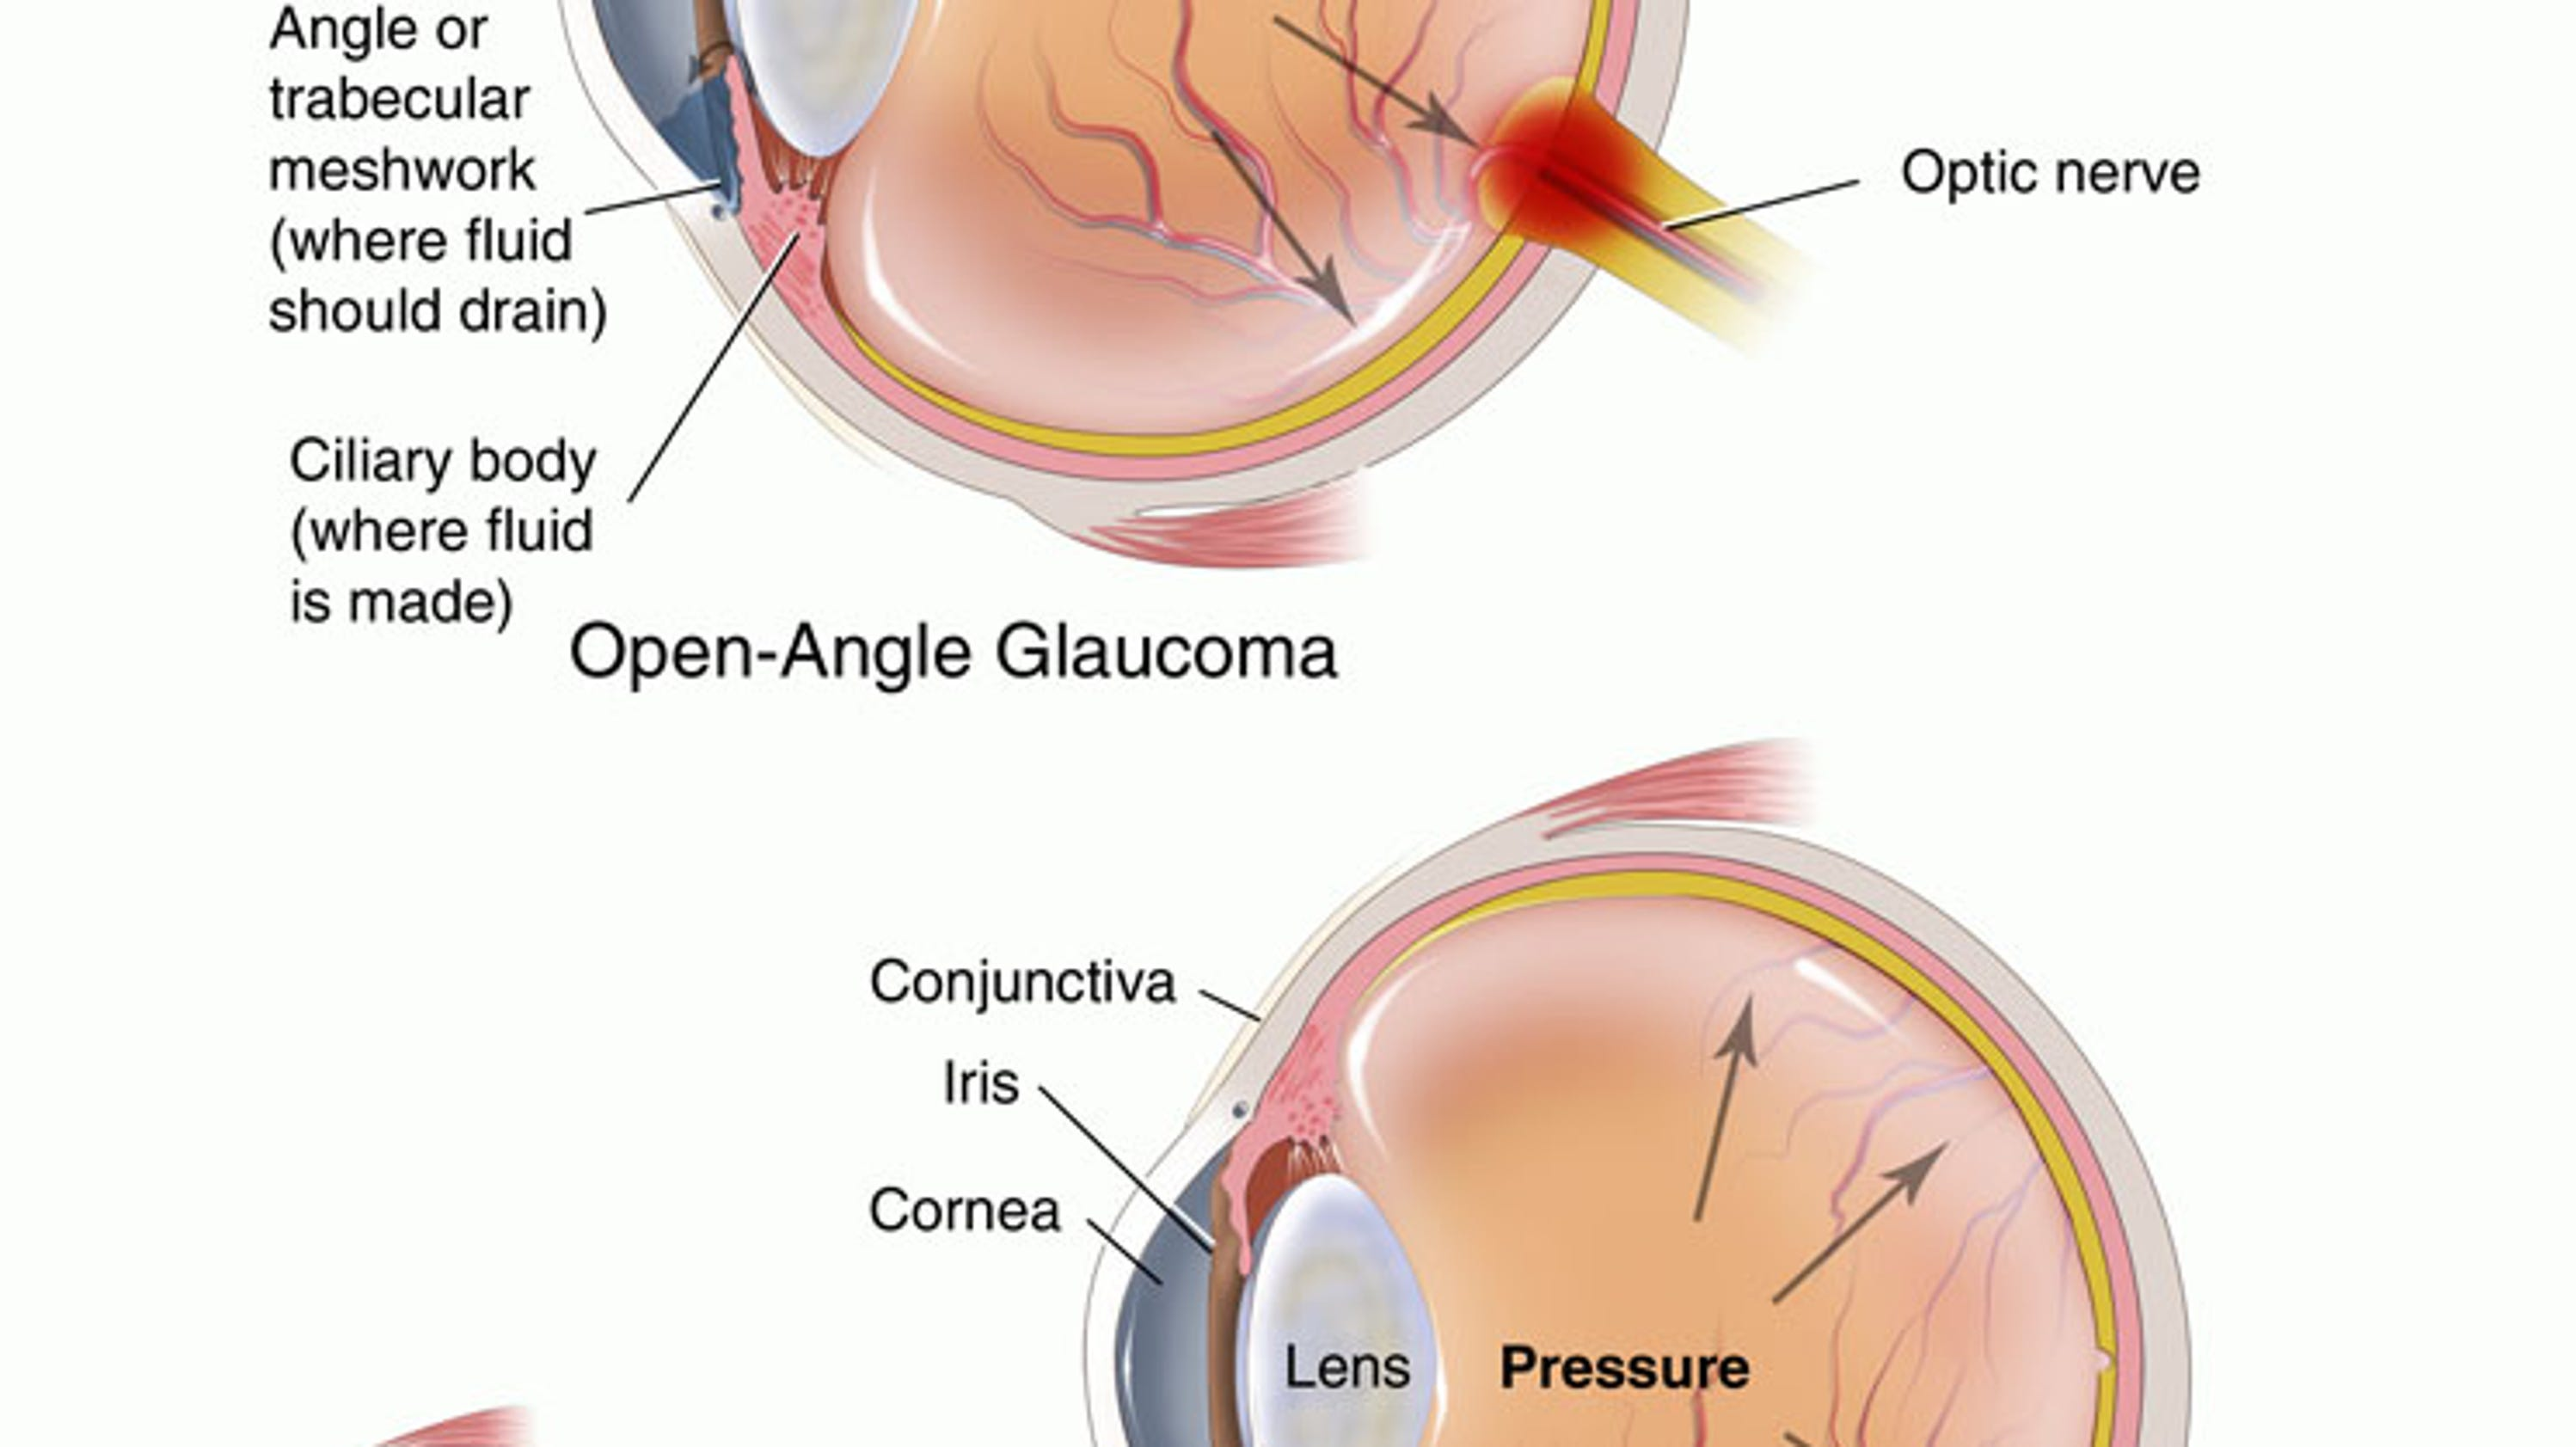 blindness langlo view distance article cataracts blinds journals global causes cause res of vision fulltext and hi can lrg impairment